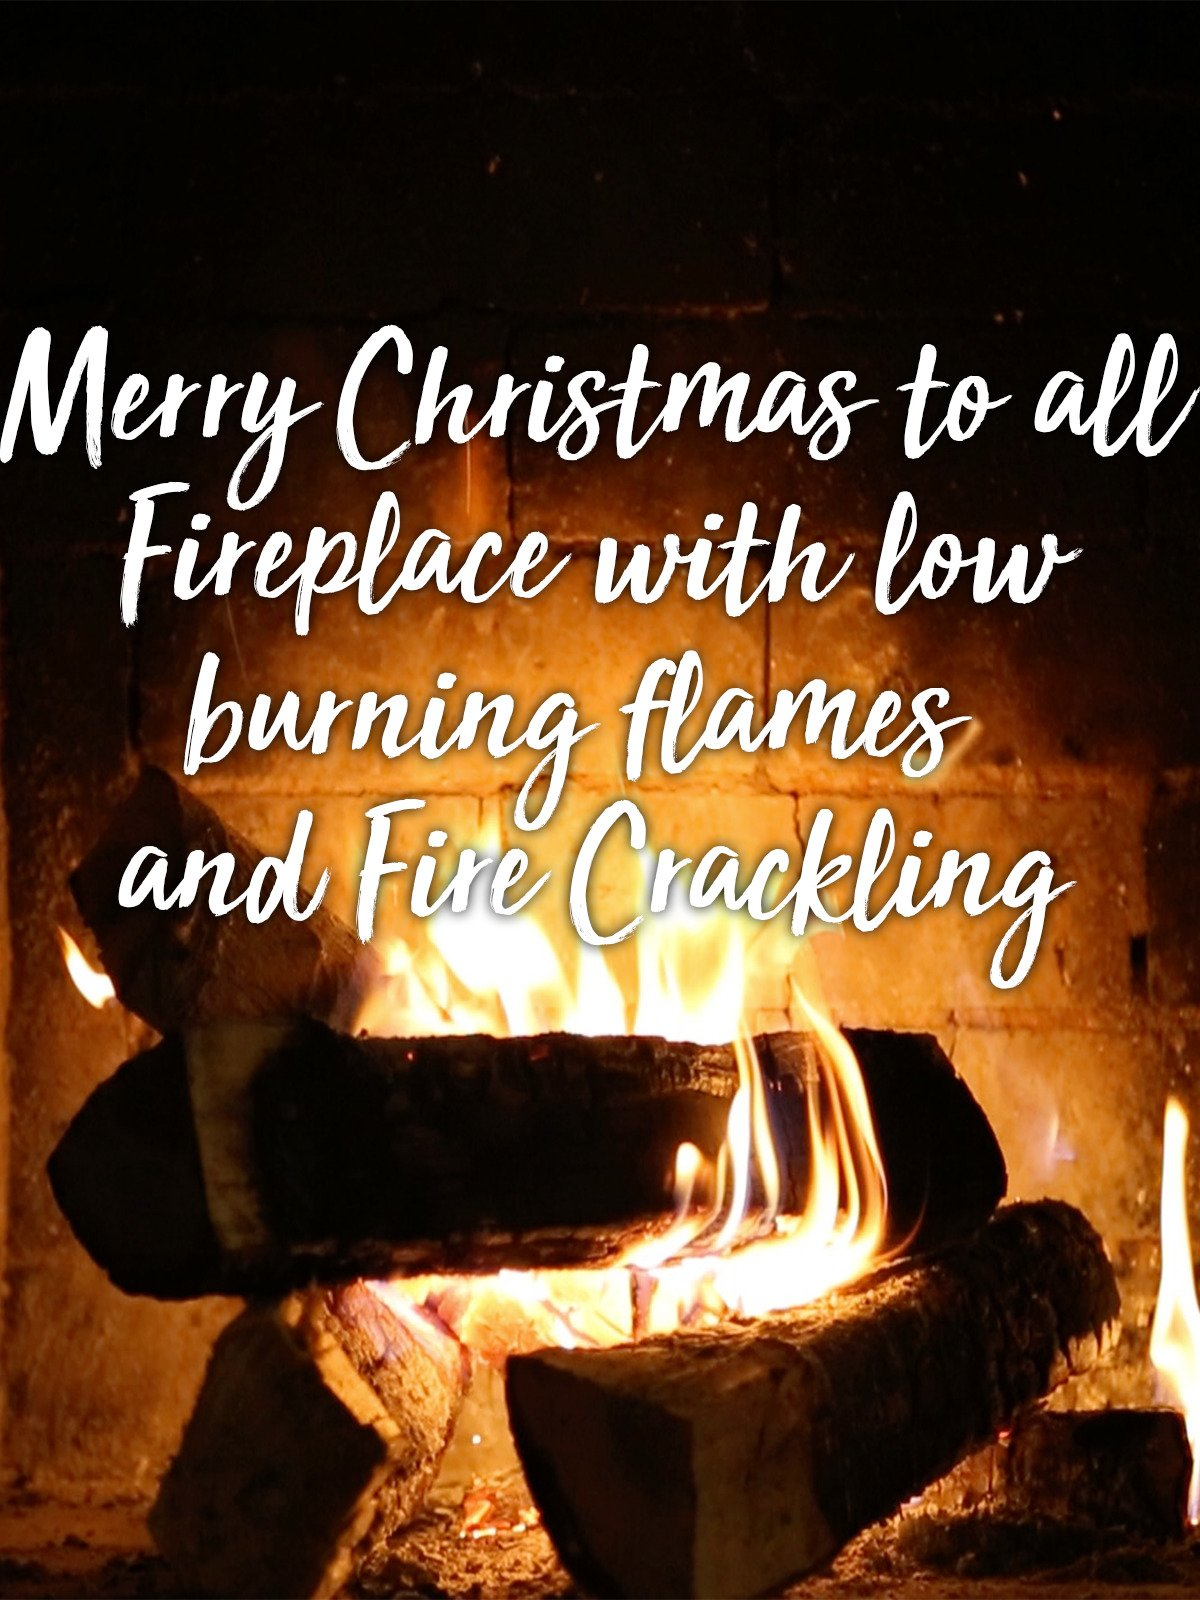 Merry Christmas to all Fireplace with low burning flames and Fire Crackling